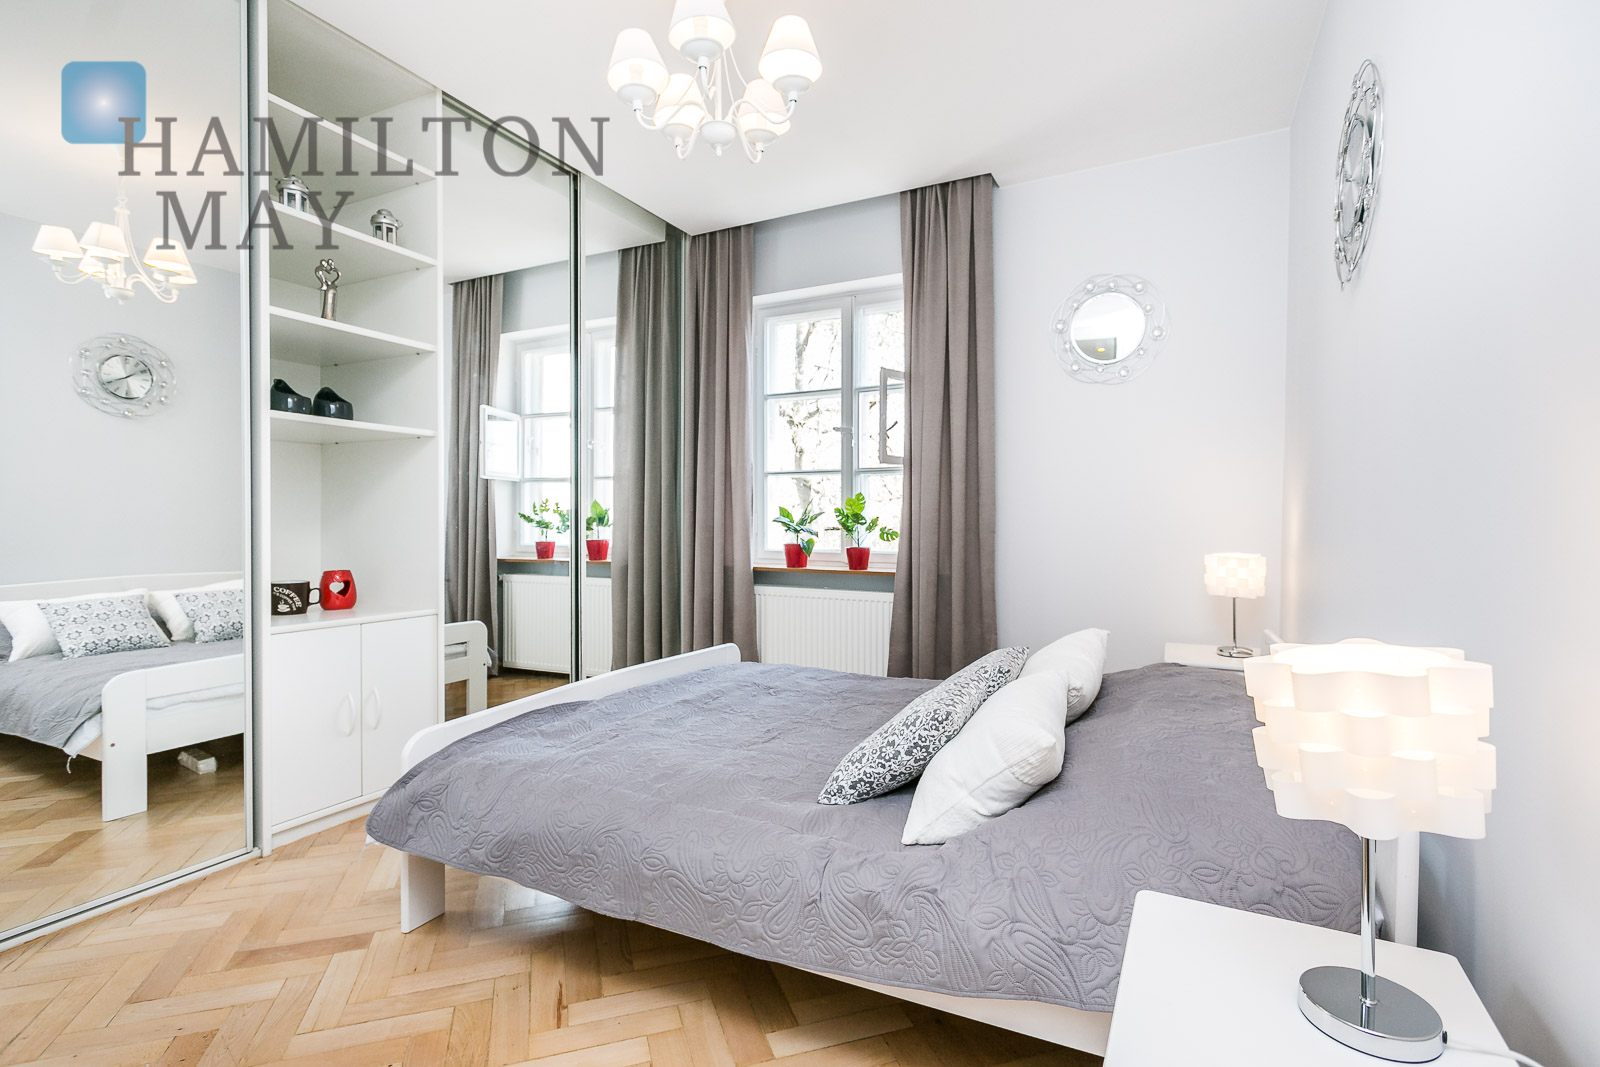 Beautiful and stylish one bedroom apartment in the Old Town area Warsaw for rent